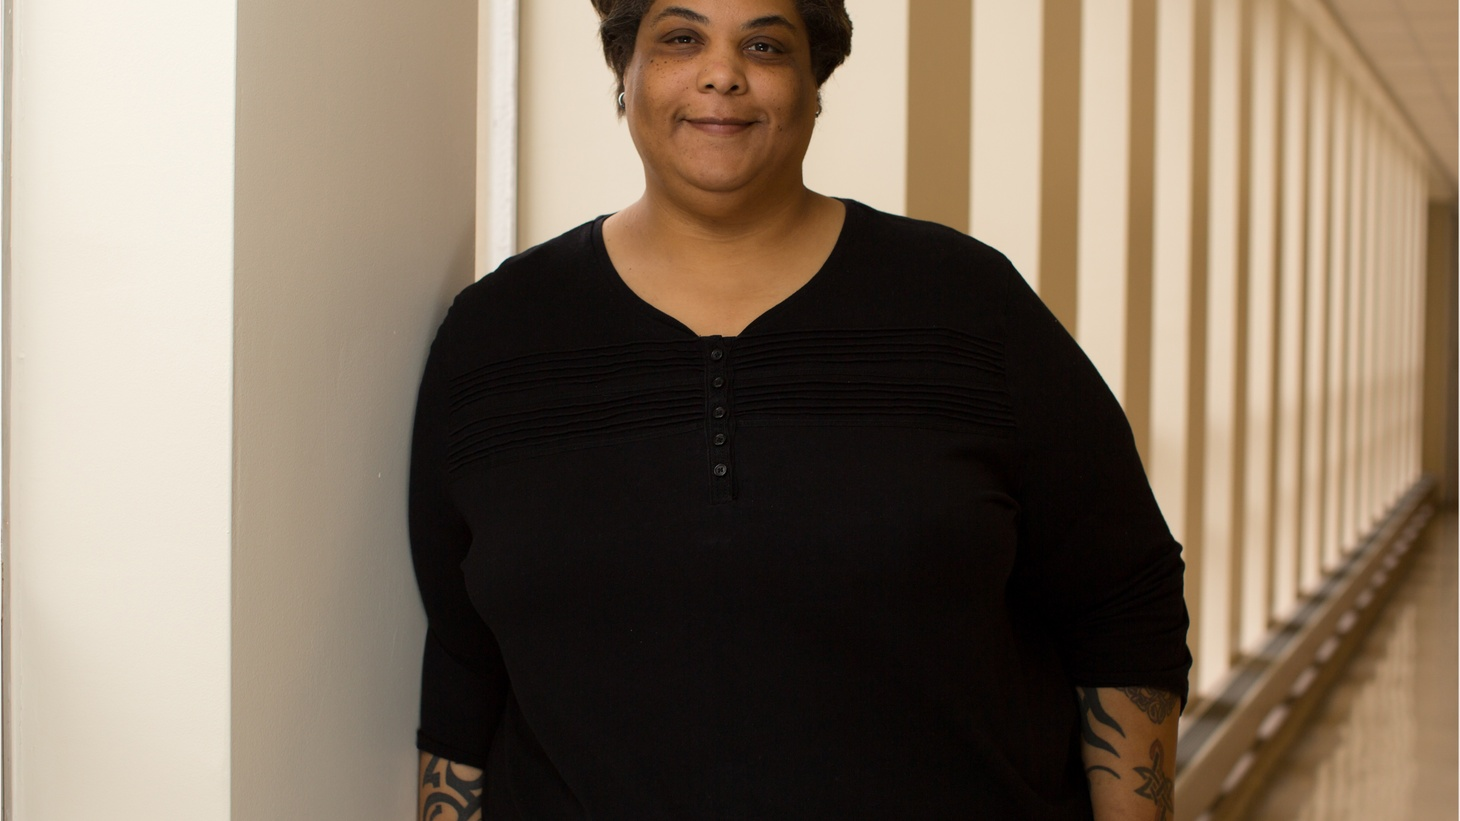 Roxane Gay was gang raped when she was 12 years old. She didn't tell anyone because she was filled with shame. To cope, she filled herself up food. She gained hundreds of pounds. She's written a memoir about her body and what it's like living in the world when you're really fat.